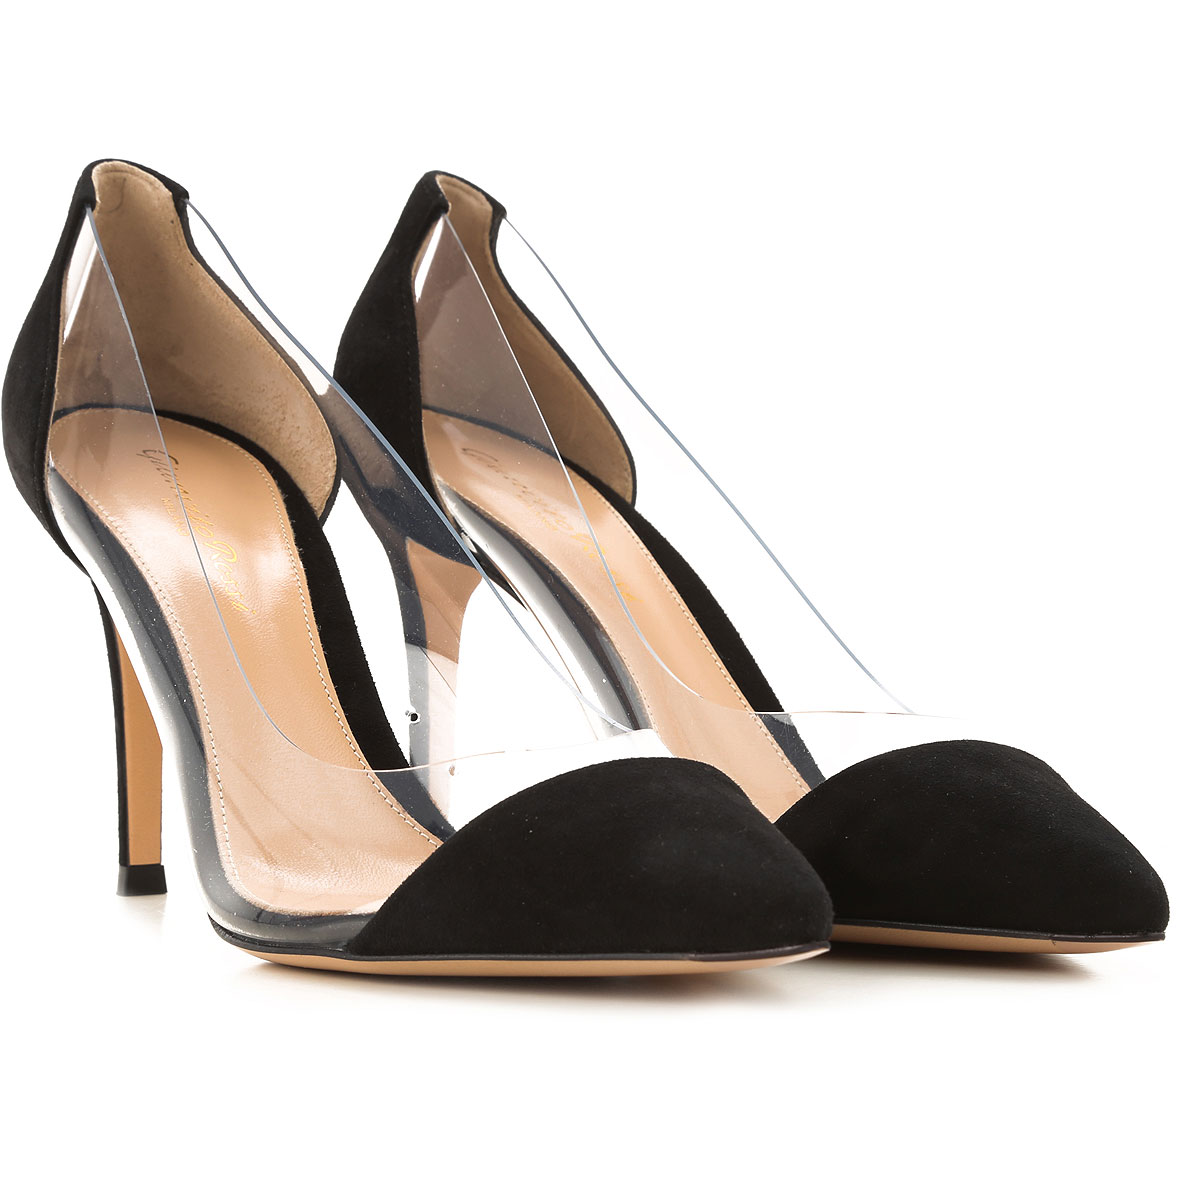 Gianvito Rossi Pumps & High Heels for Women On Sale, Black, Suede leather, 2019, 11 6